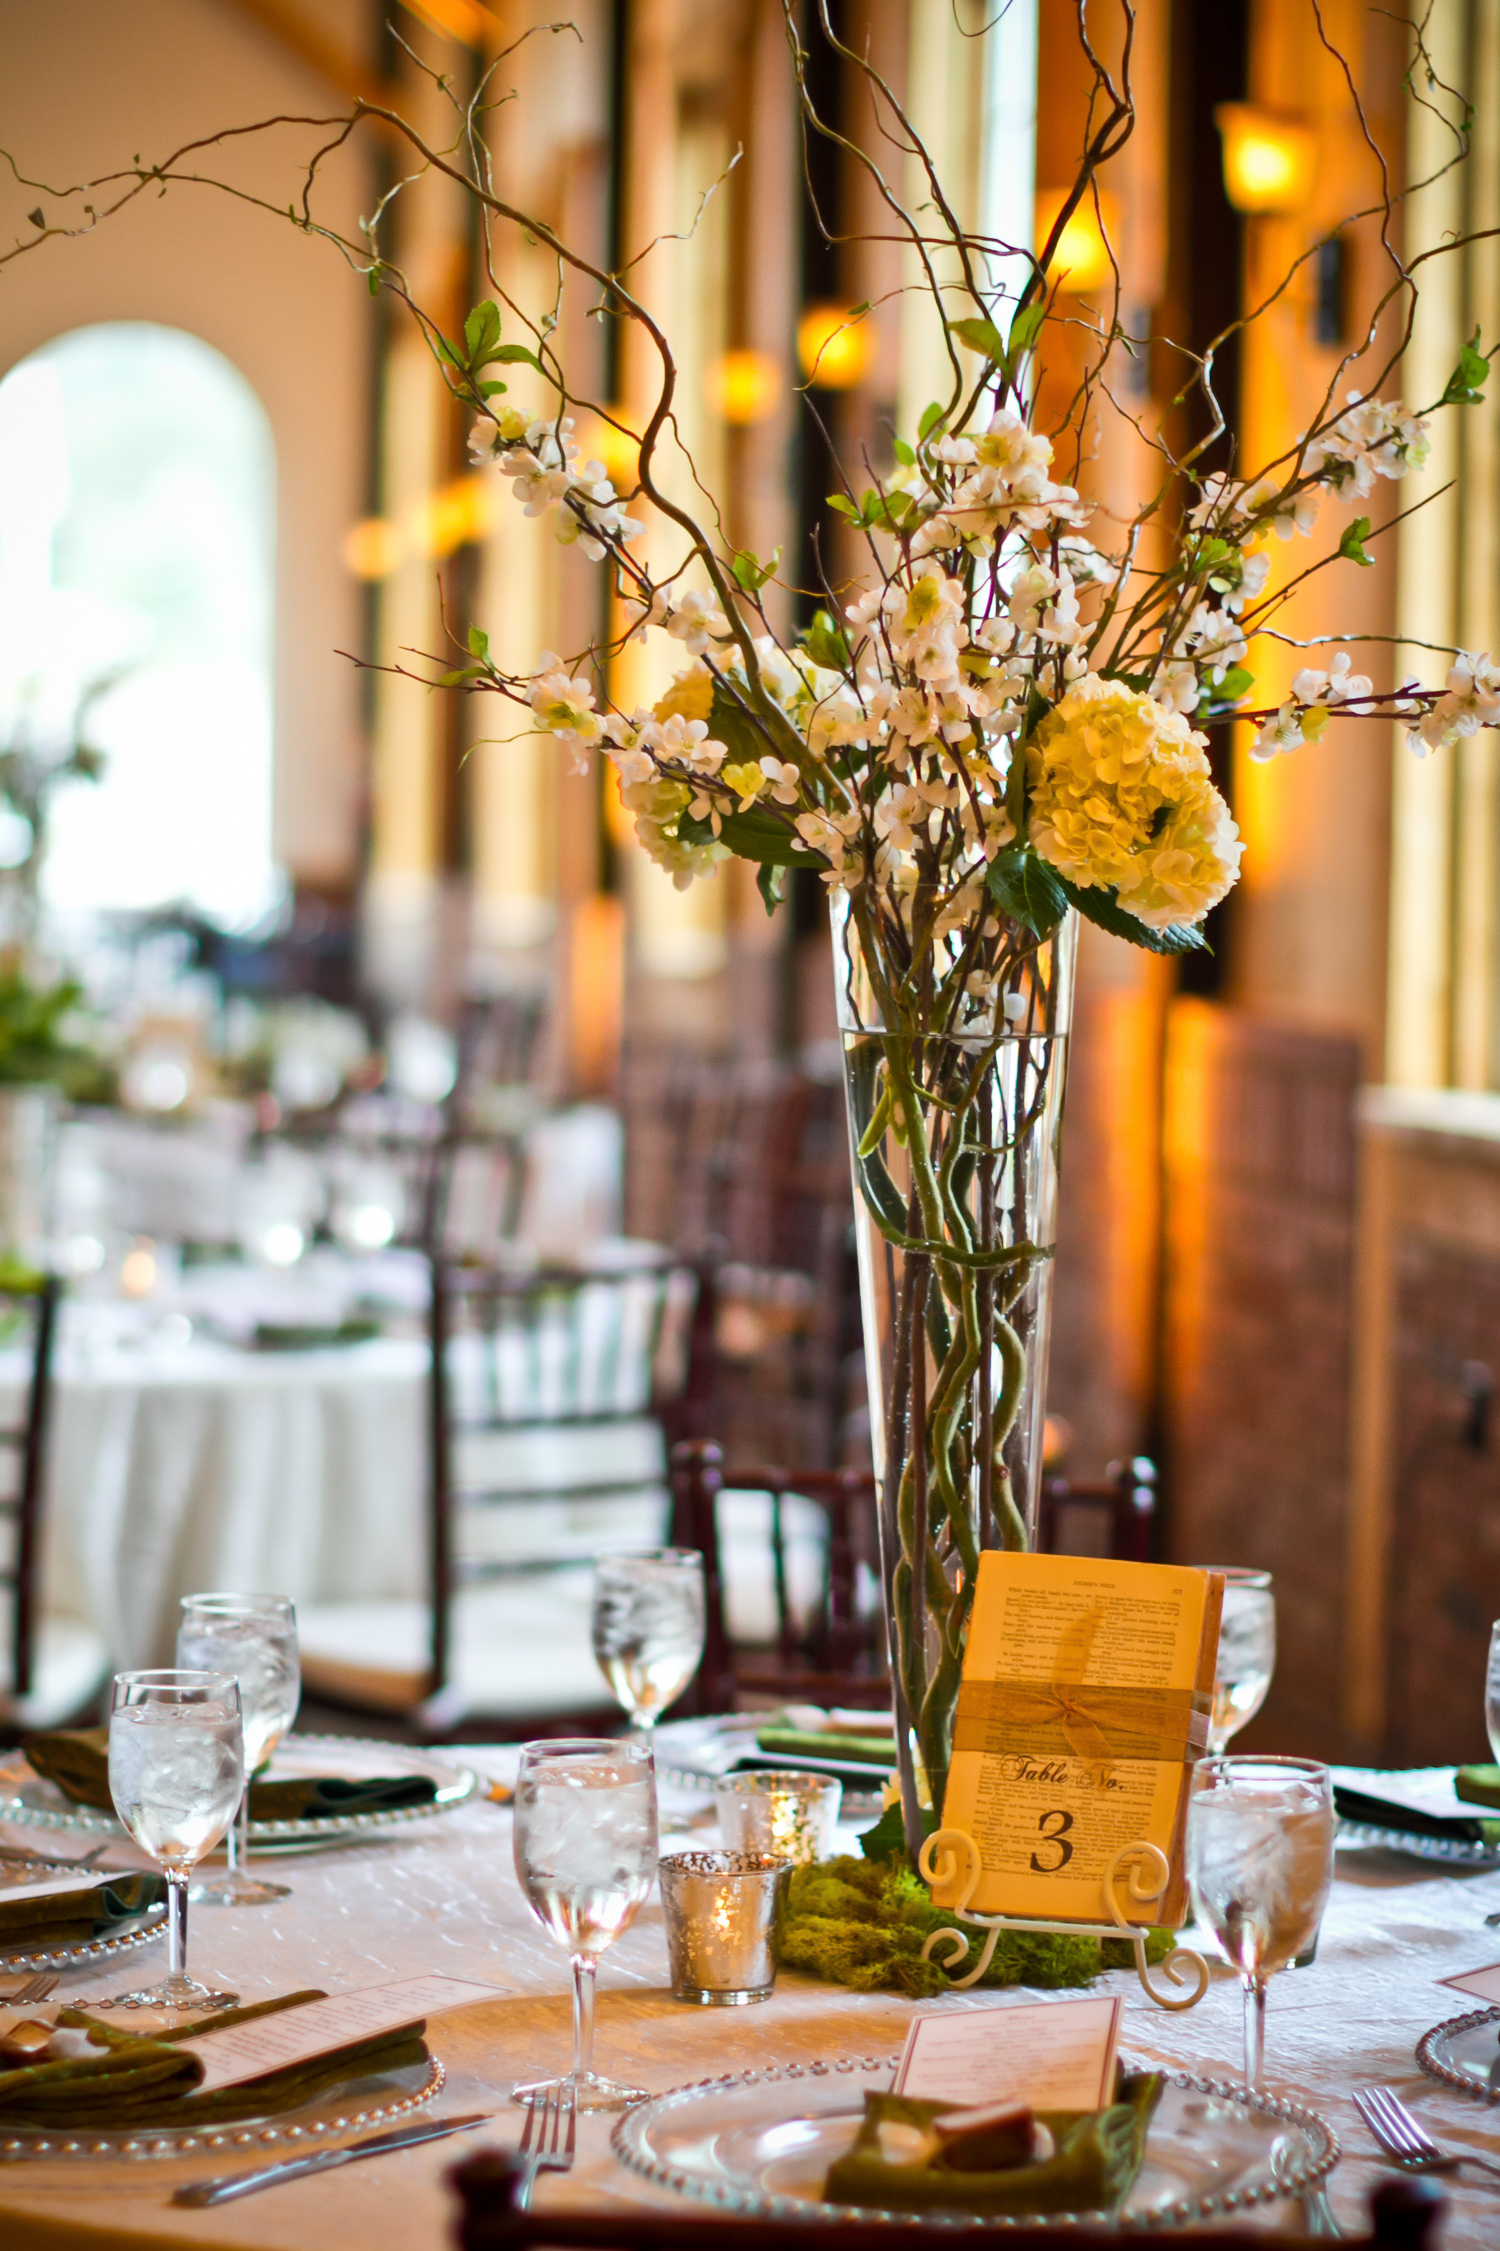 Crooked_Willow_Farms_Wedding_053.JPG